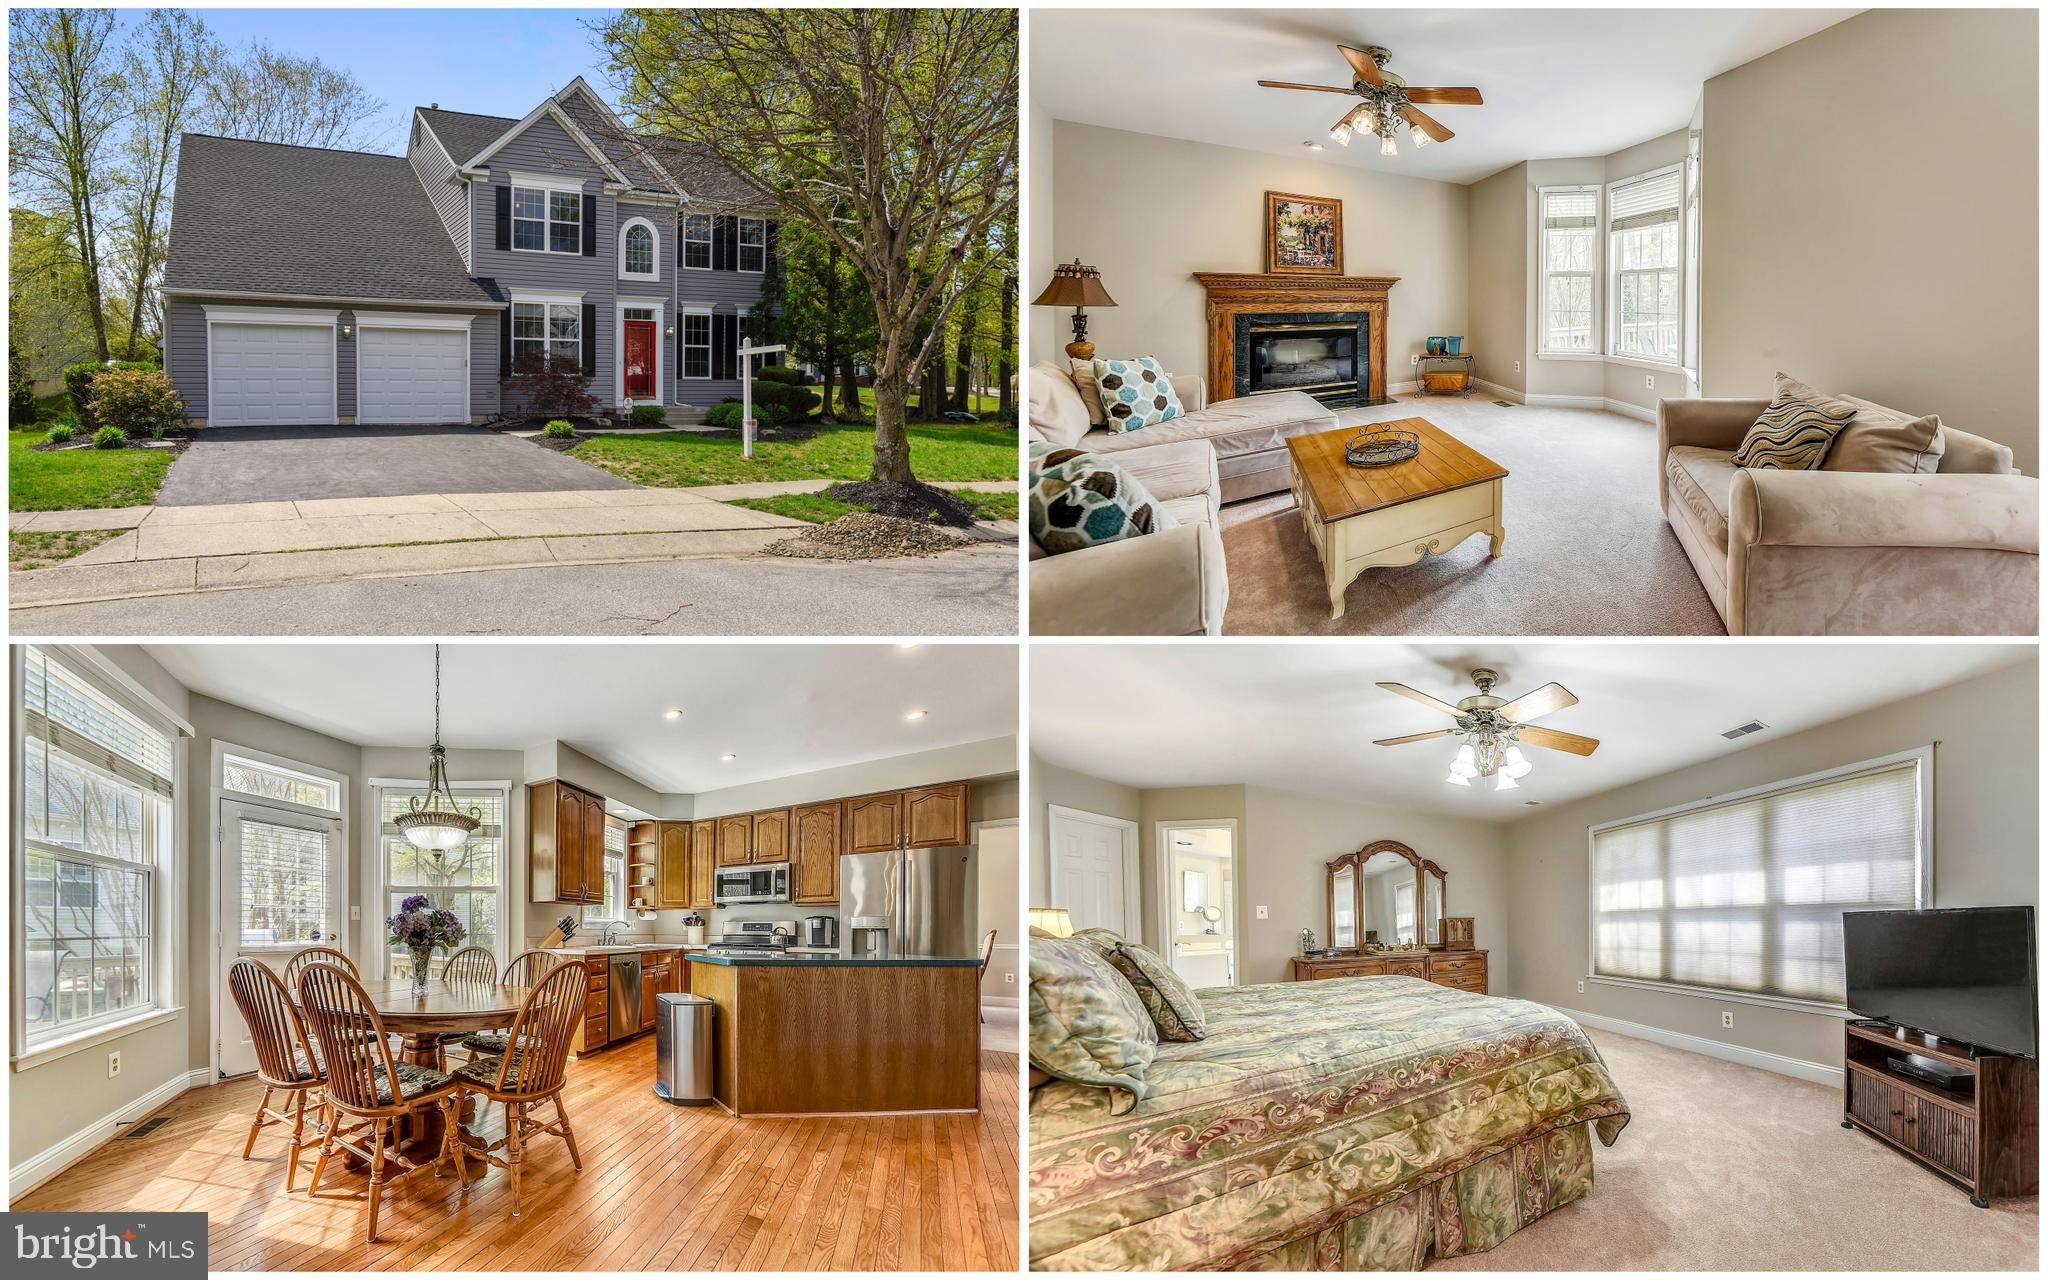 2905 MIDDLE BRIDGE COURT, CROFTON, MD 21114